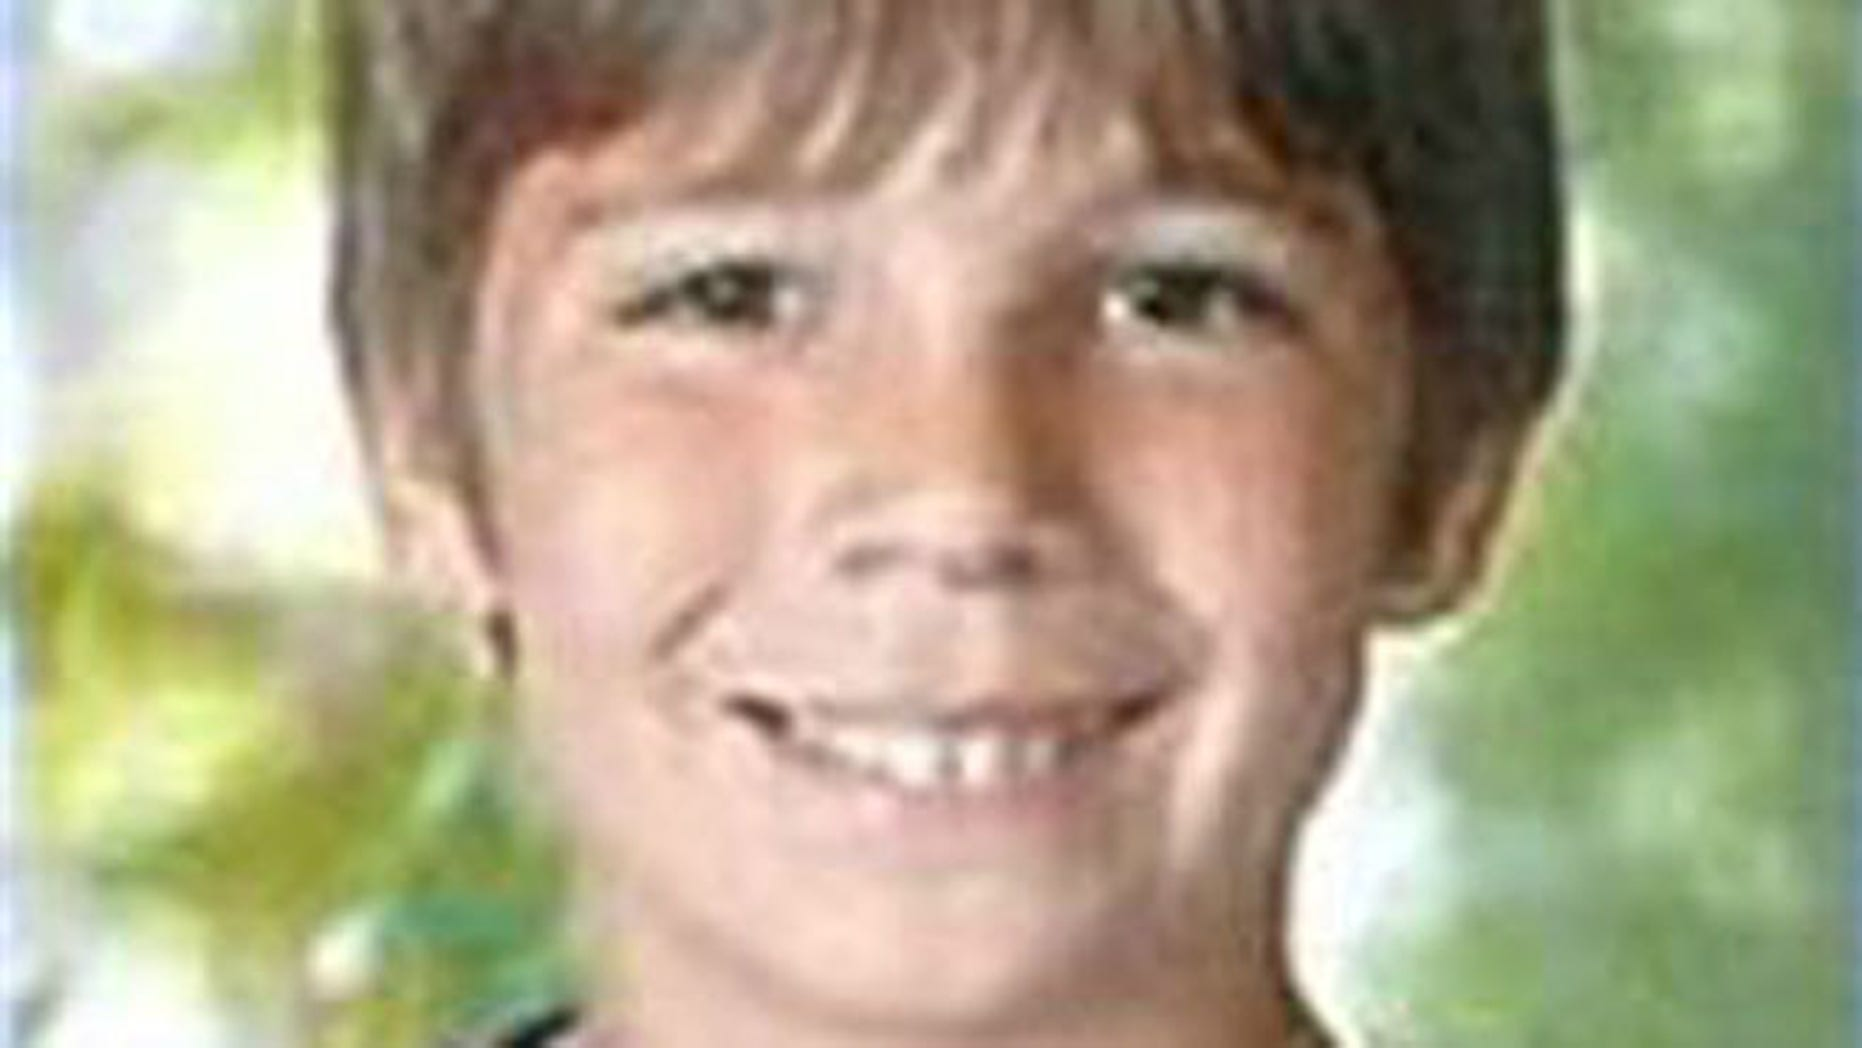 Temperatures have topped 100 degrees every day since Terry Dewayne Smith Jr. went missing.